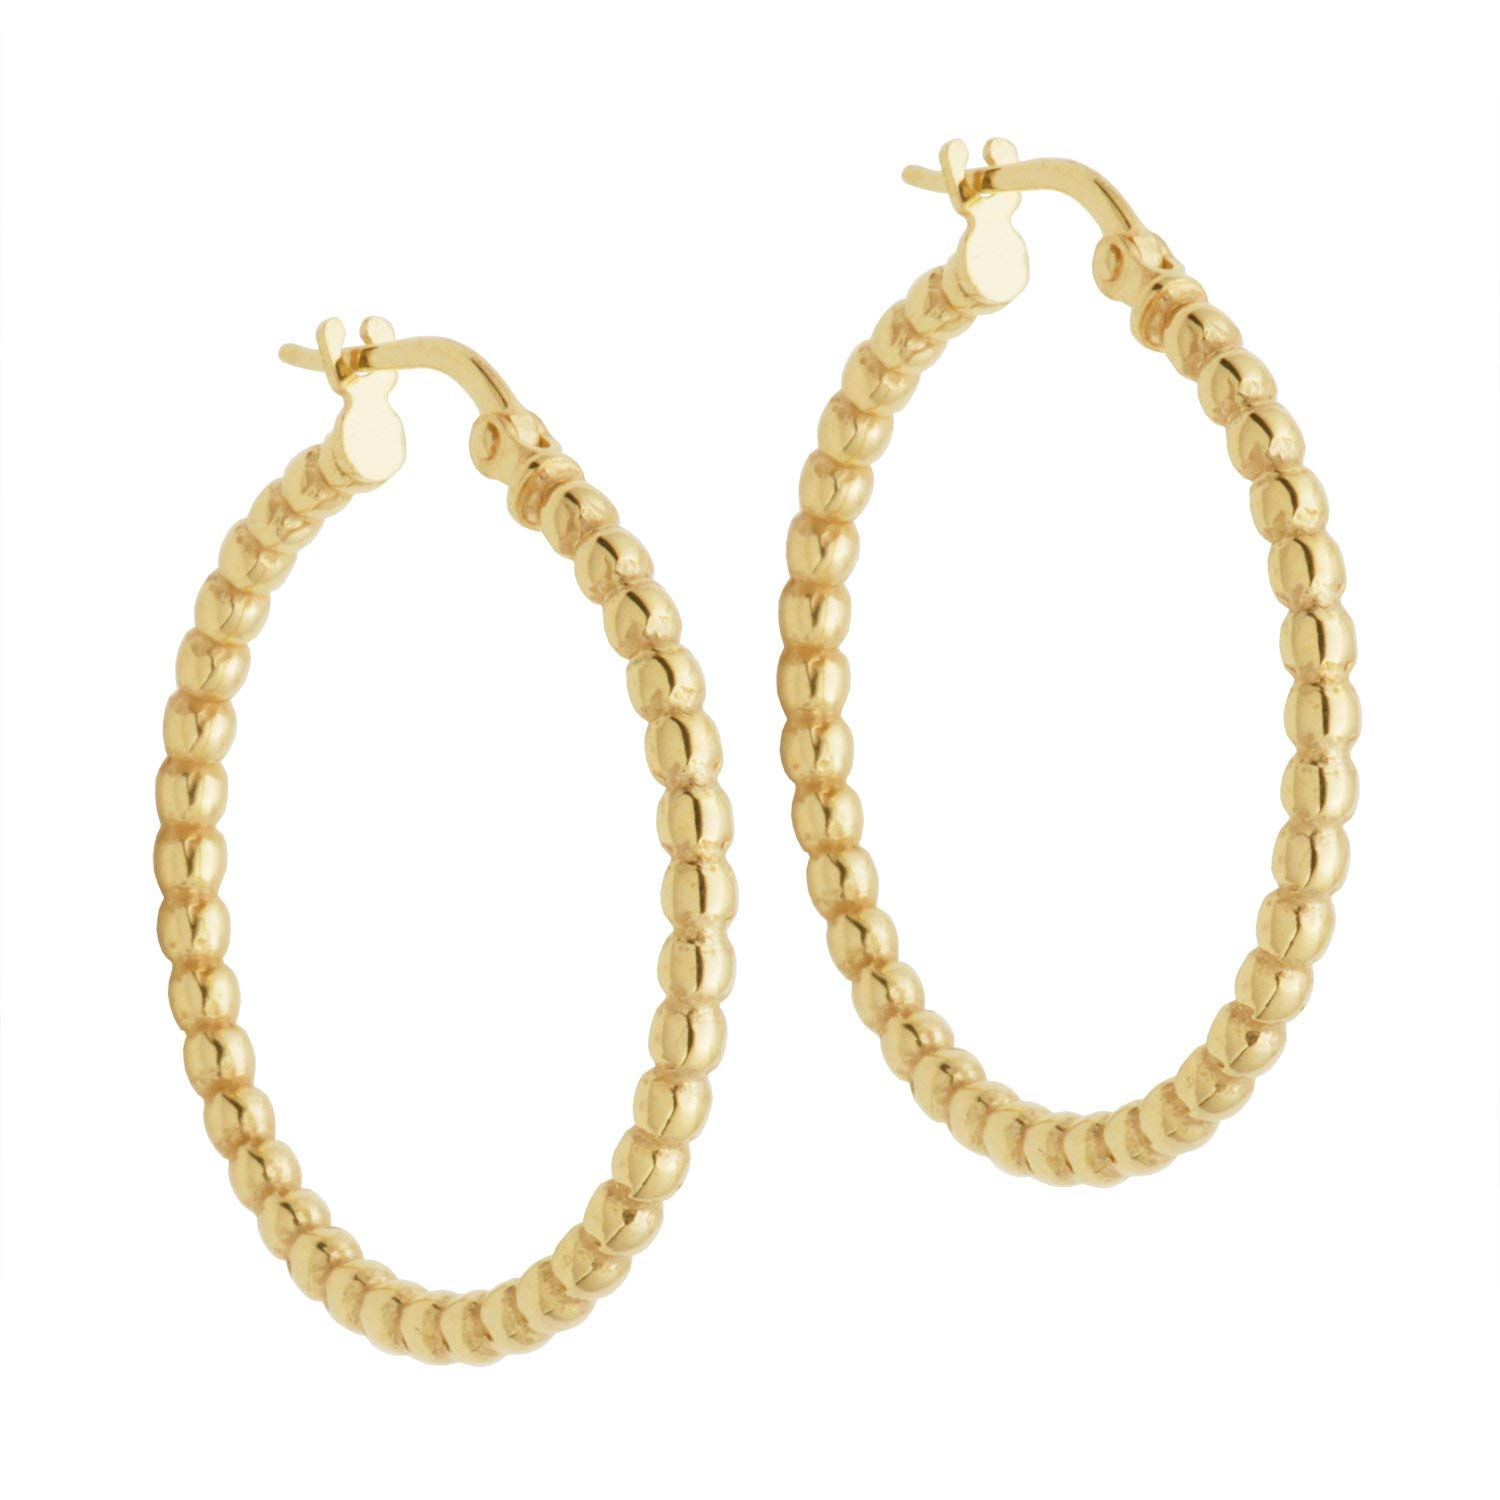 18k Yellow Gold Plated Sterling Silver 28mm Bead Tube Hoop Earrings